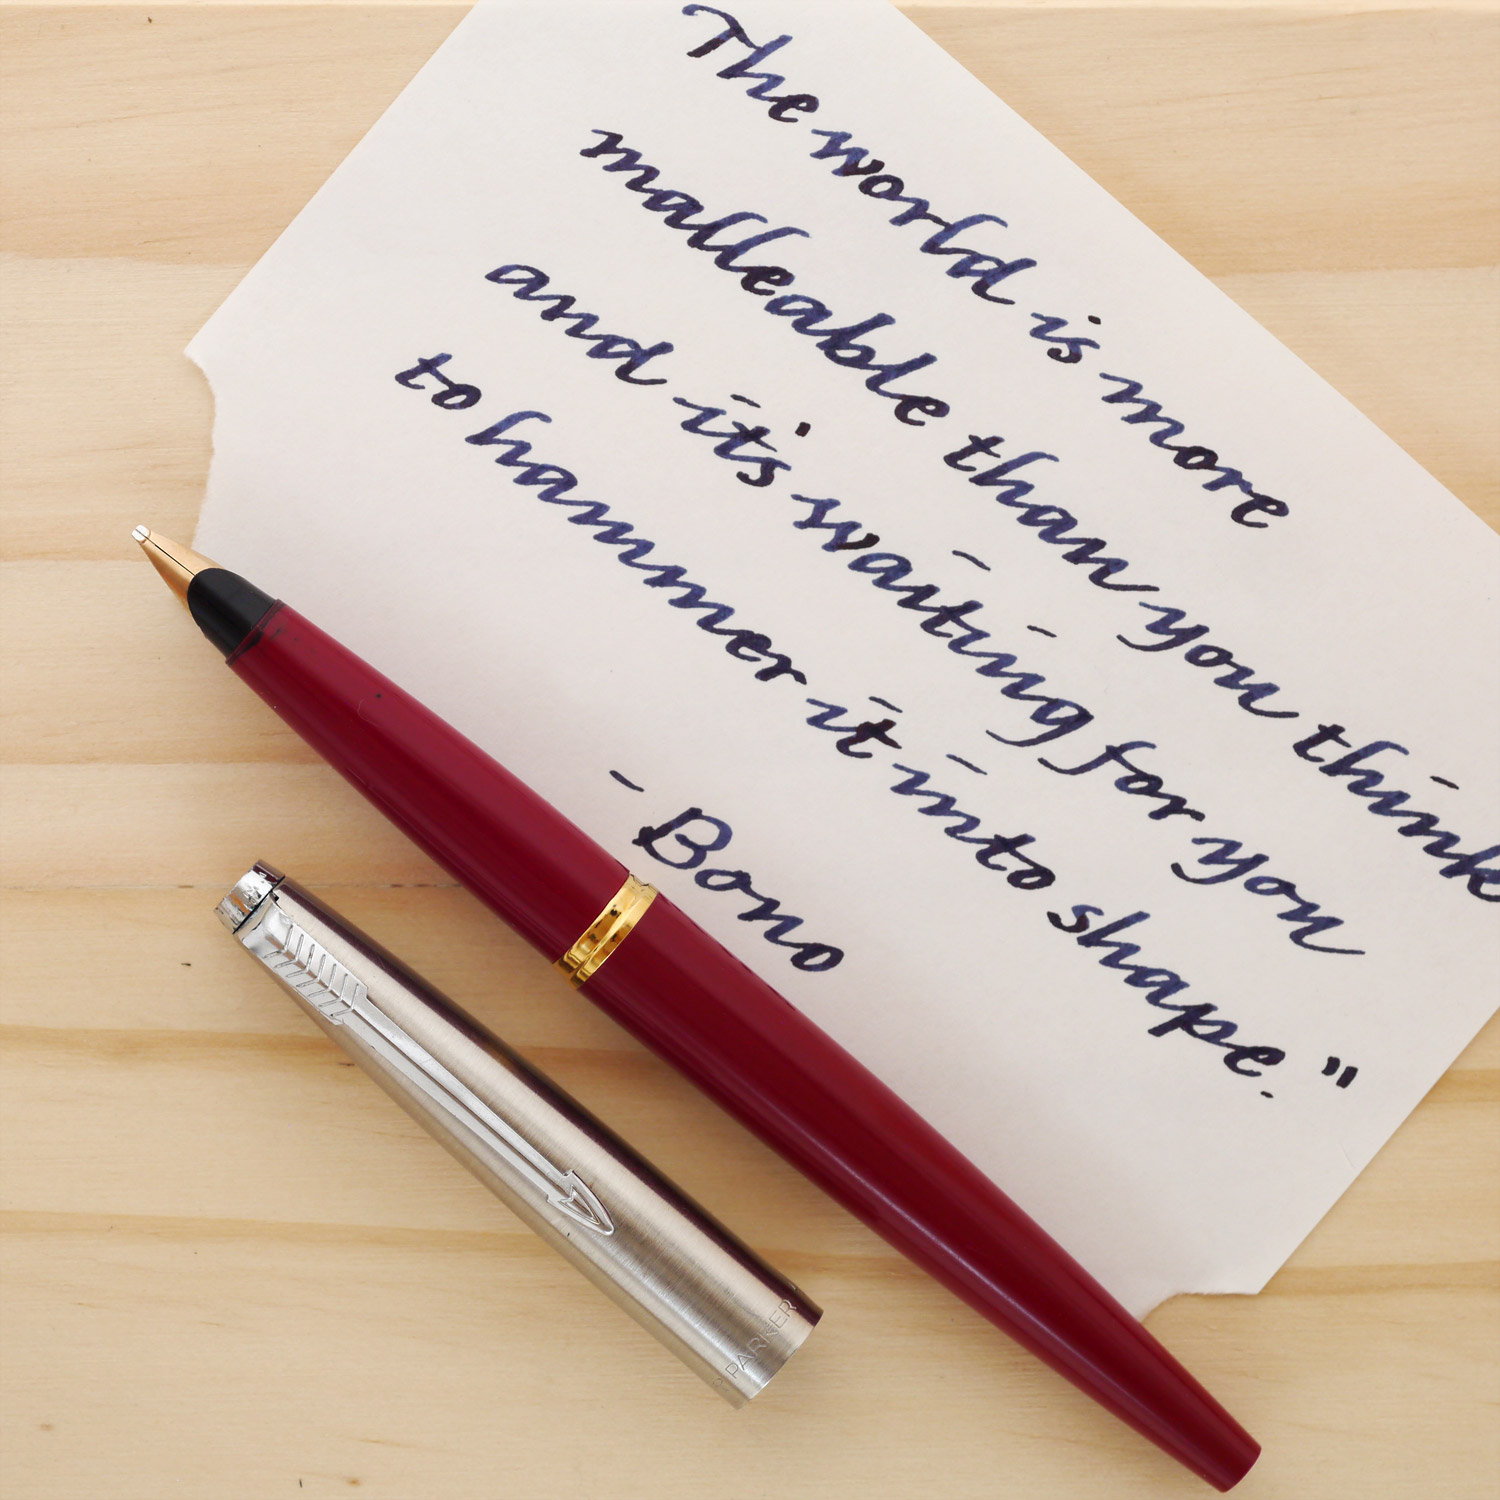 Parker 45 with a factory italic nib.